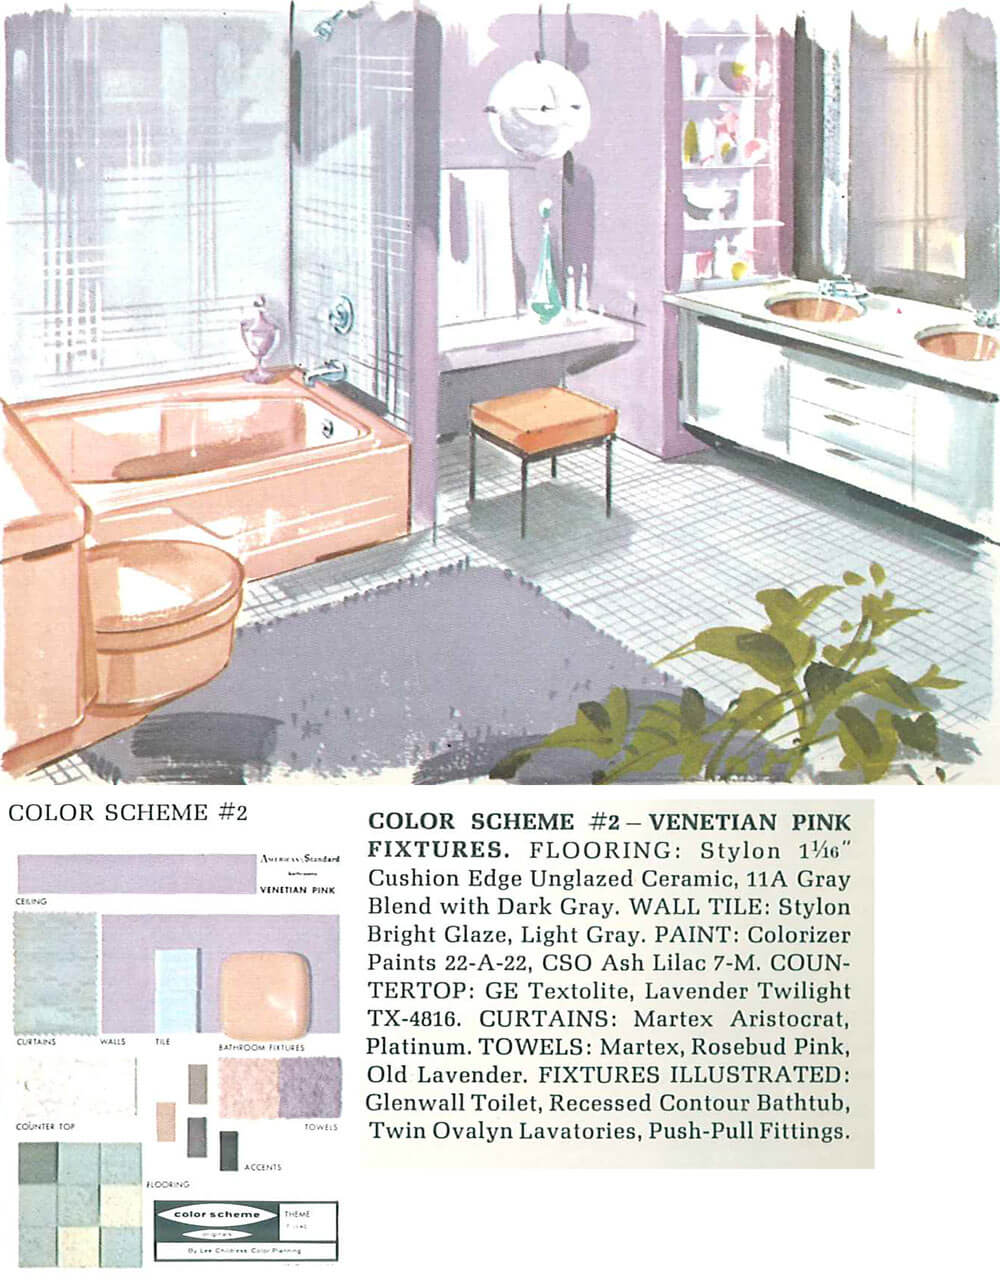 The color pink in bathroom sinks, tubs and toilets - from 1927 ...